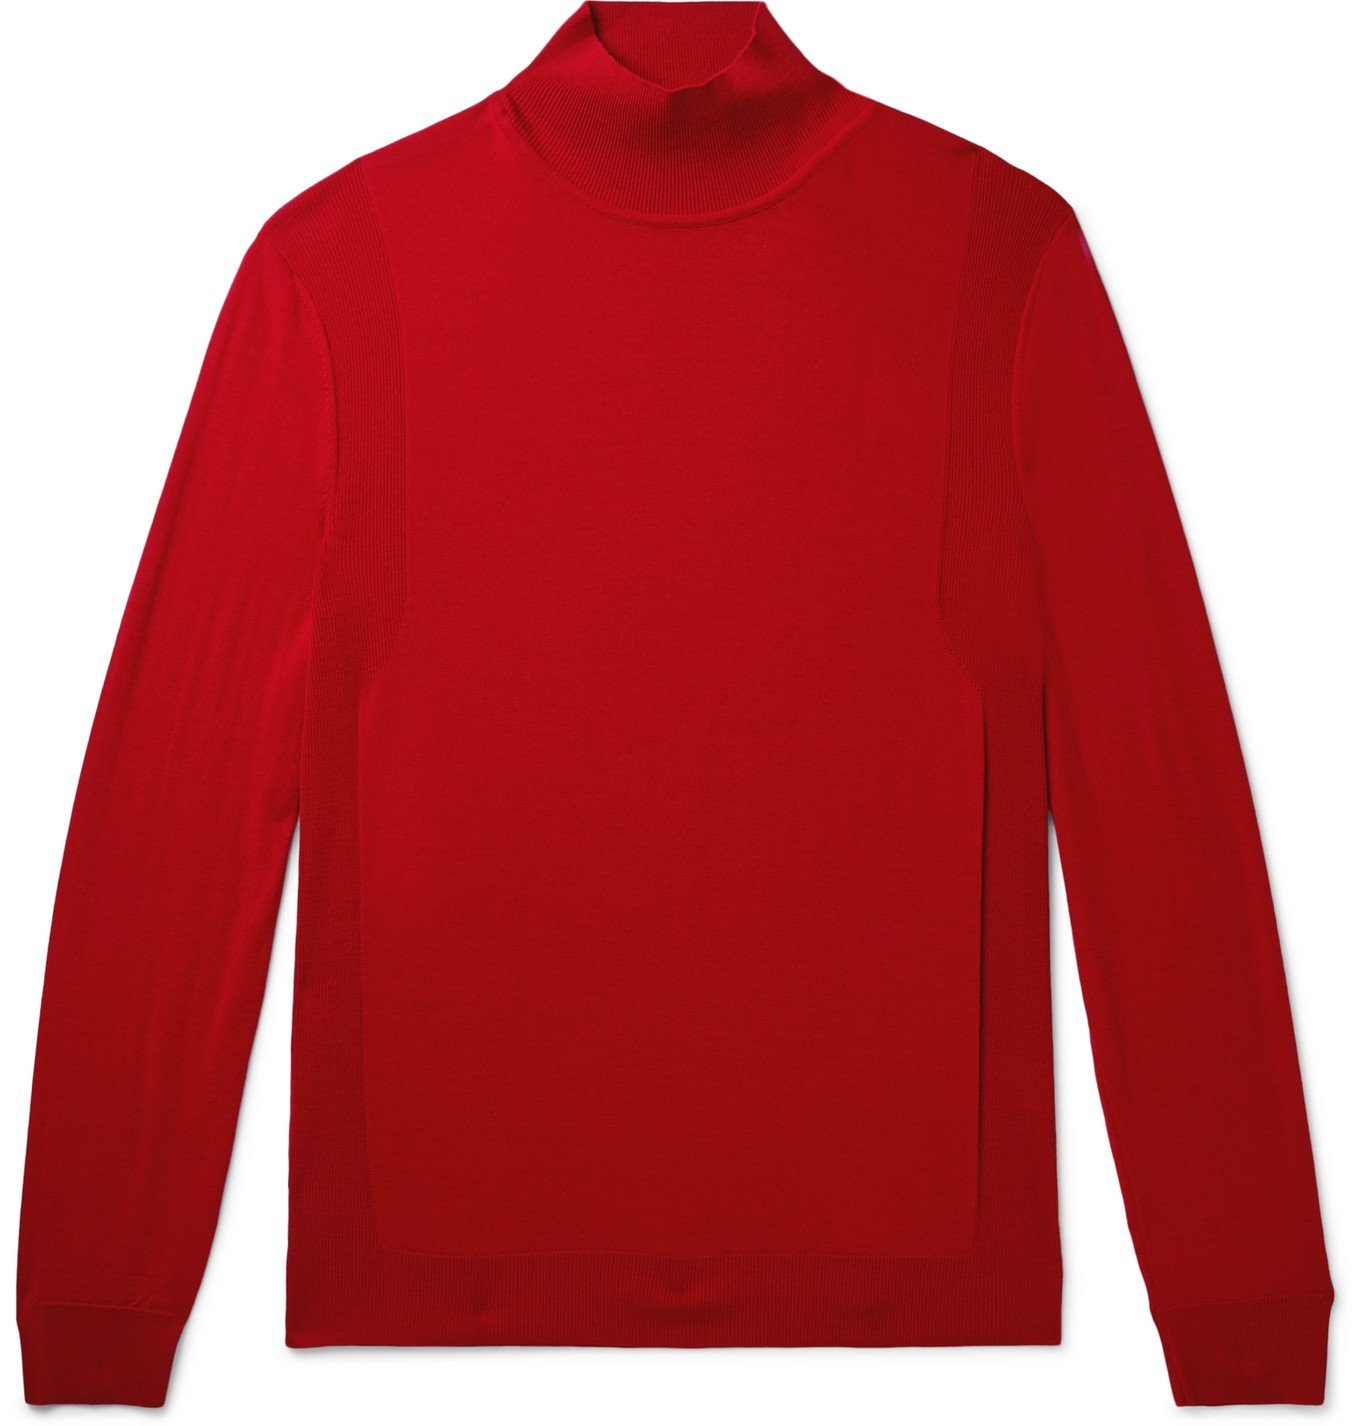 Dunhill - Slim-Fit Wool Rollneck Sweater - Red